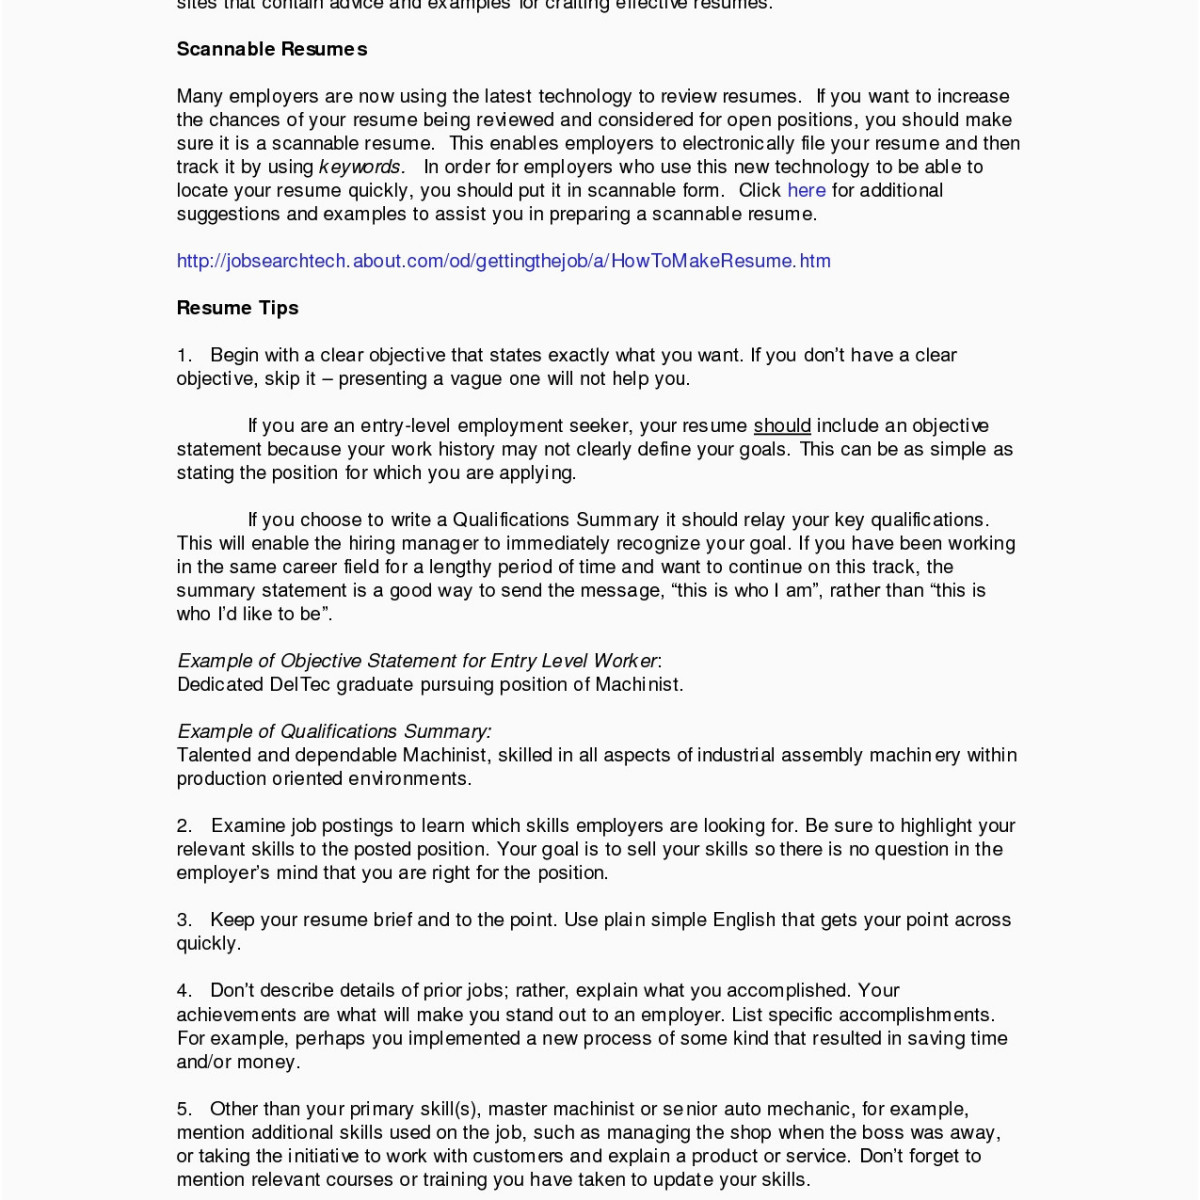 Resume for Graduate School Admission Template - Graduate School Application Resume Inspirational Graduate School